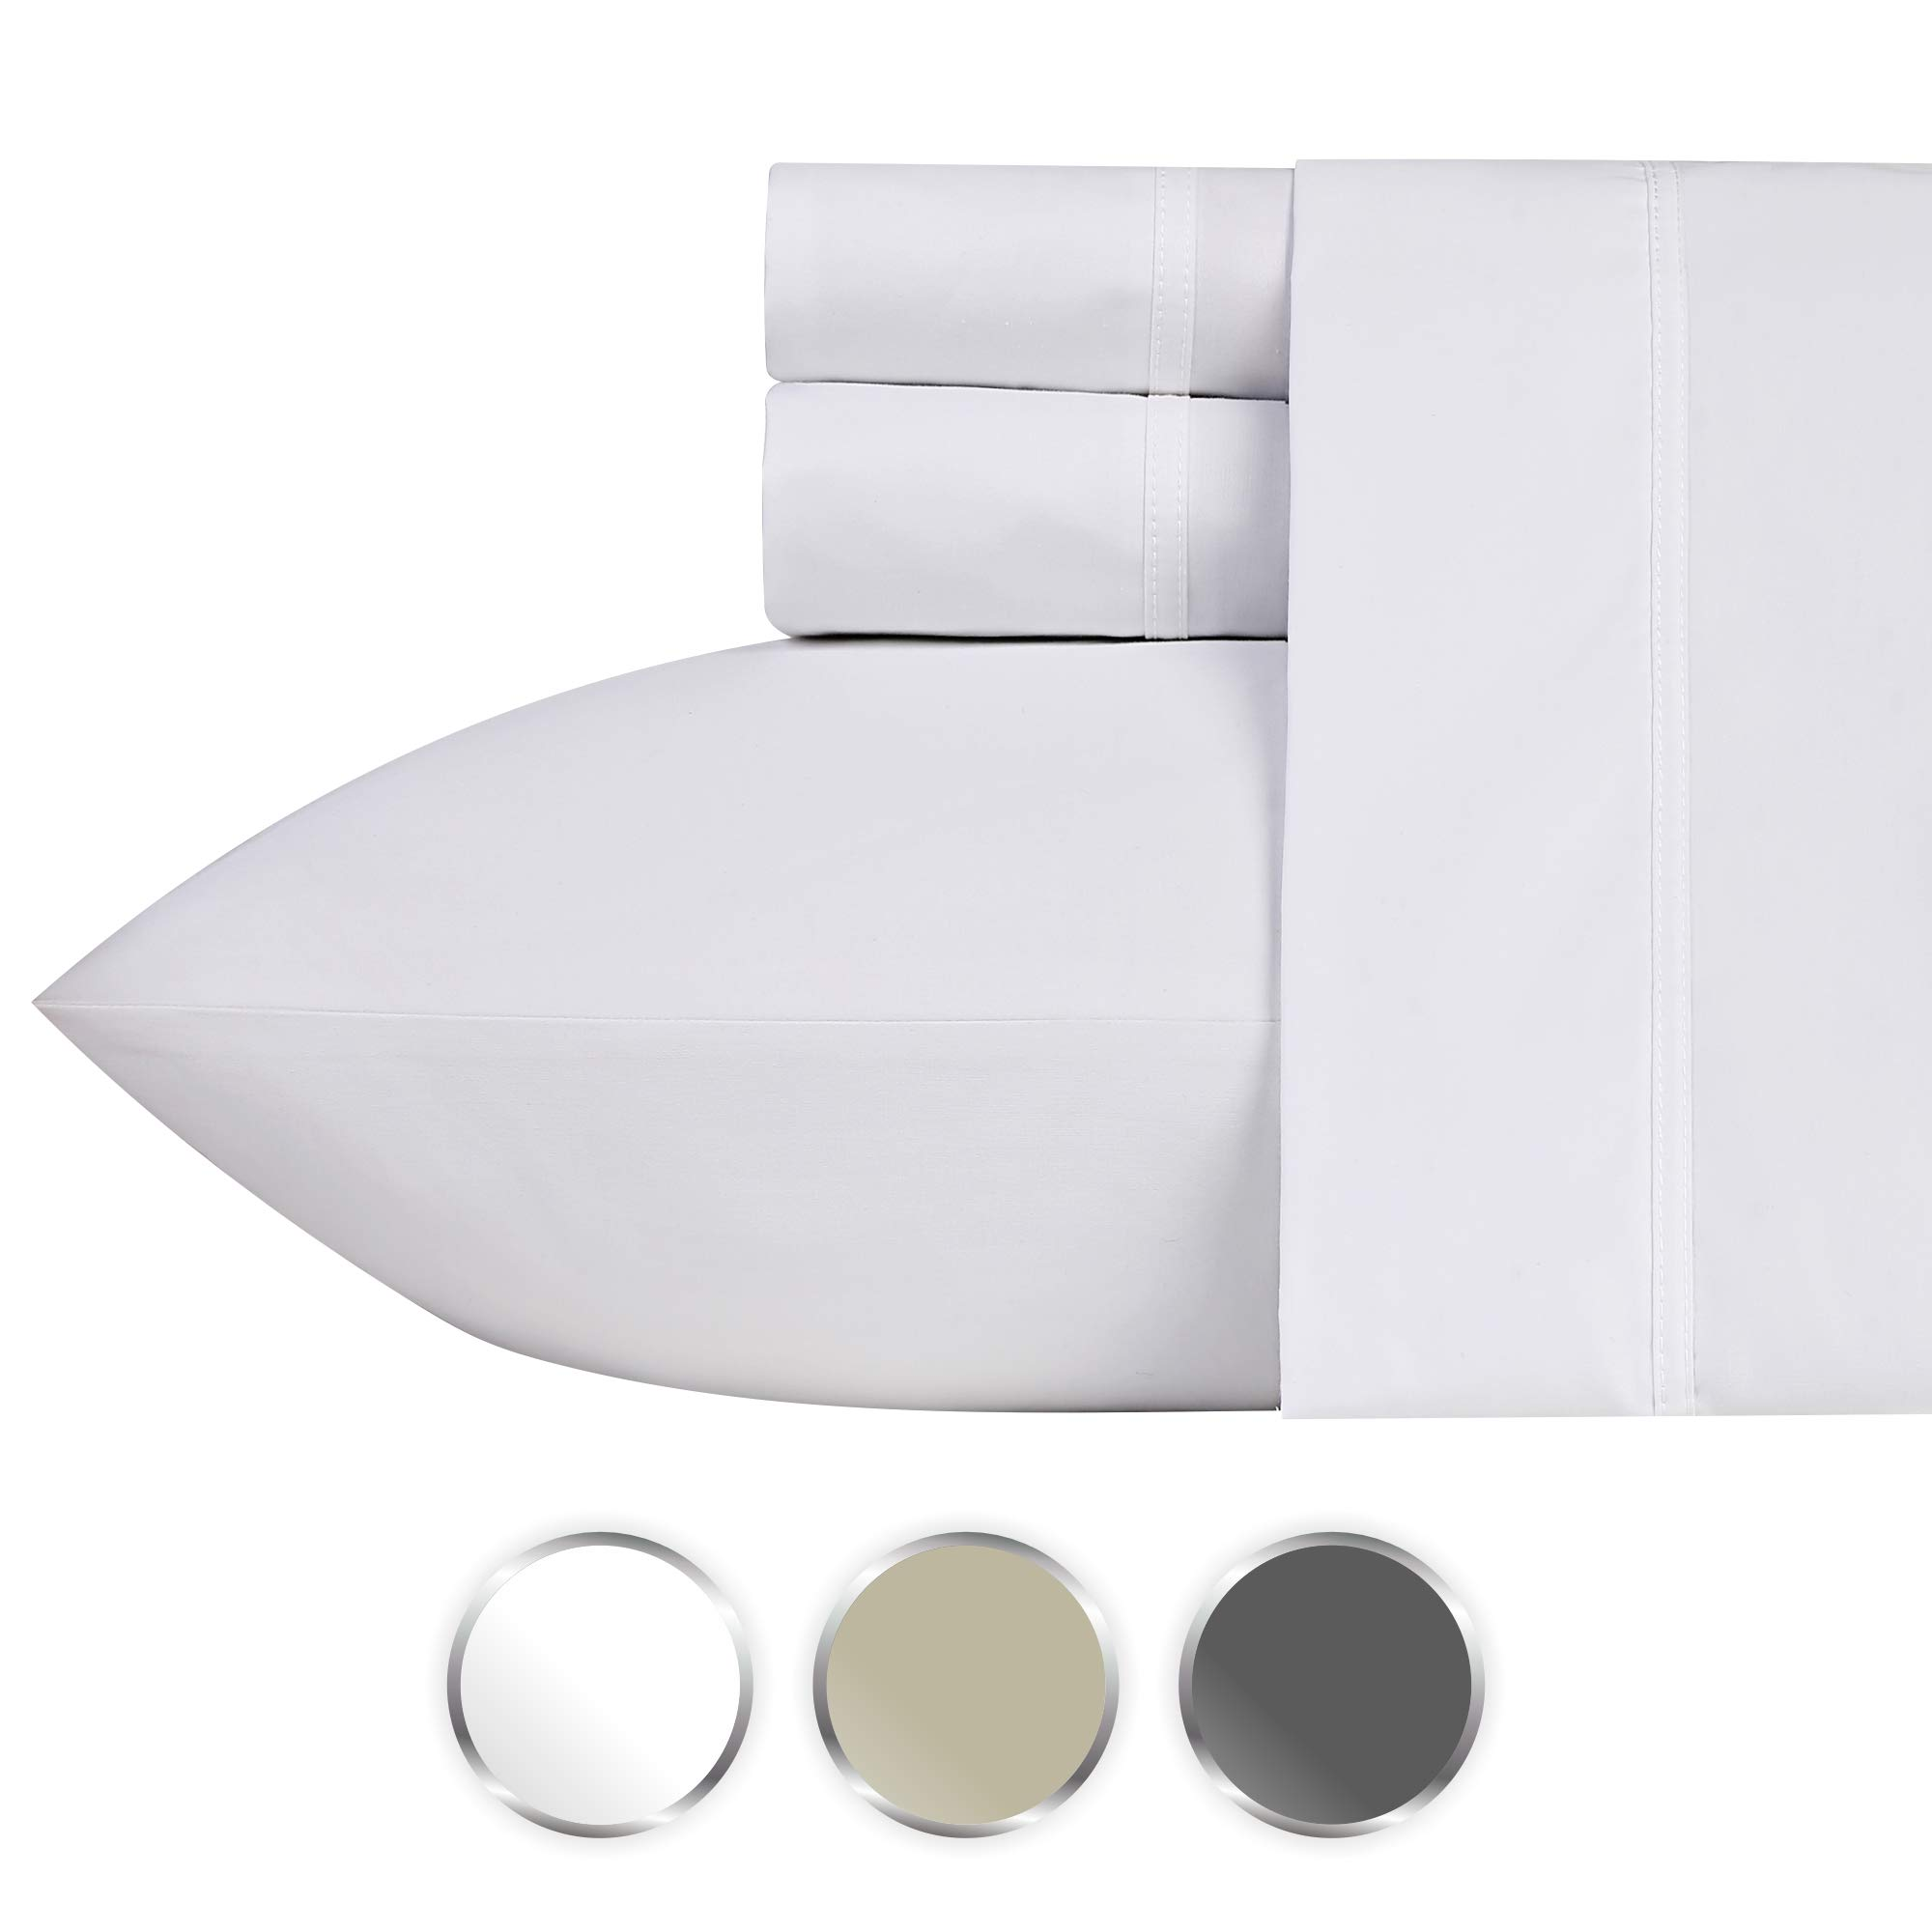 1000 Thread Count 100% Pure Cotton Bed Sheets on Amazon, 4-Pc King Size White Sheet Set, Single Ply Long-Staple Combed Cotton Yarns, Best Luxury Sateen Weave, Fits Mattress Upto 20'' Deep Pocket